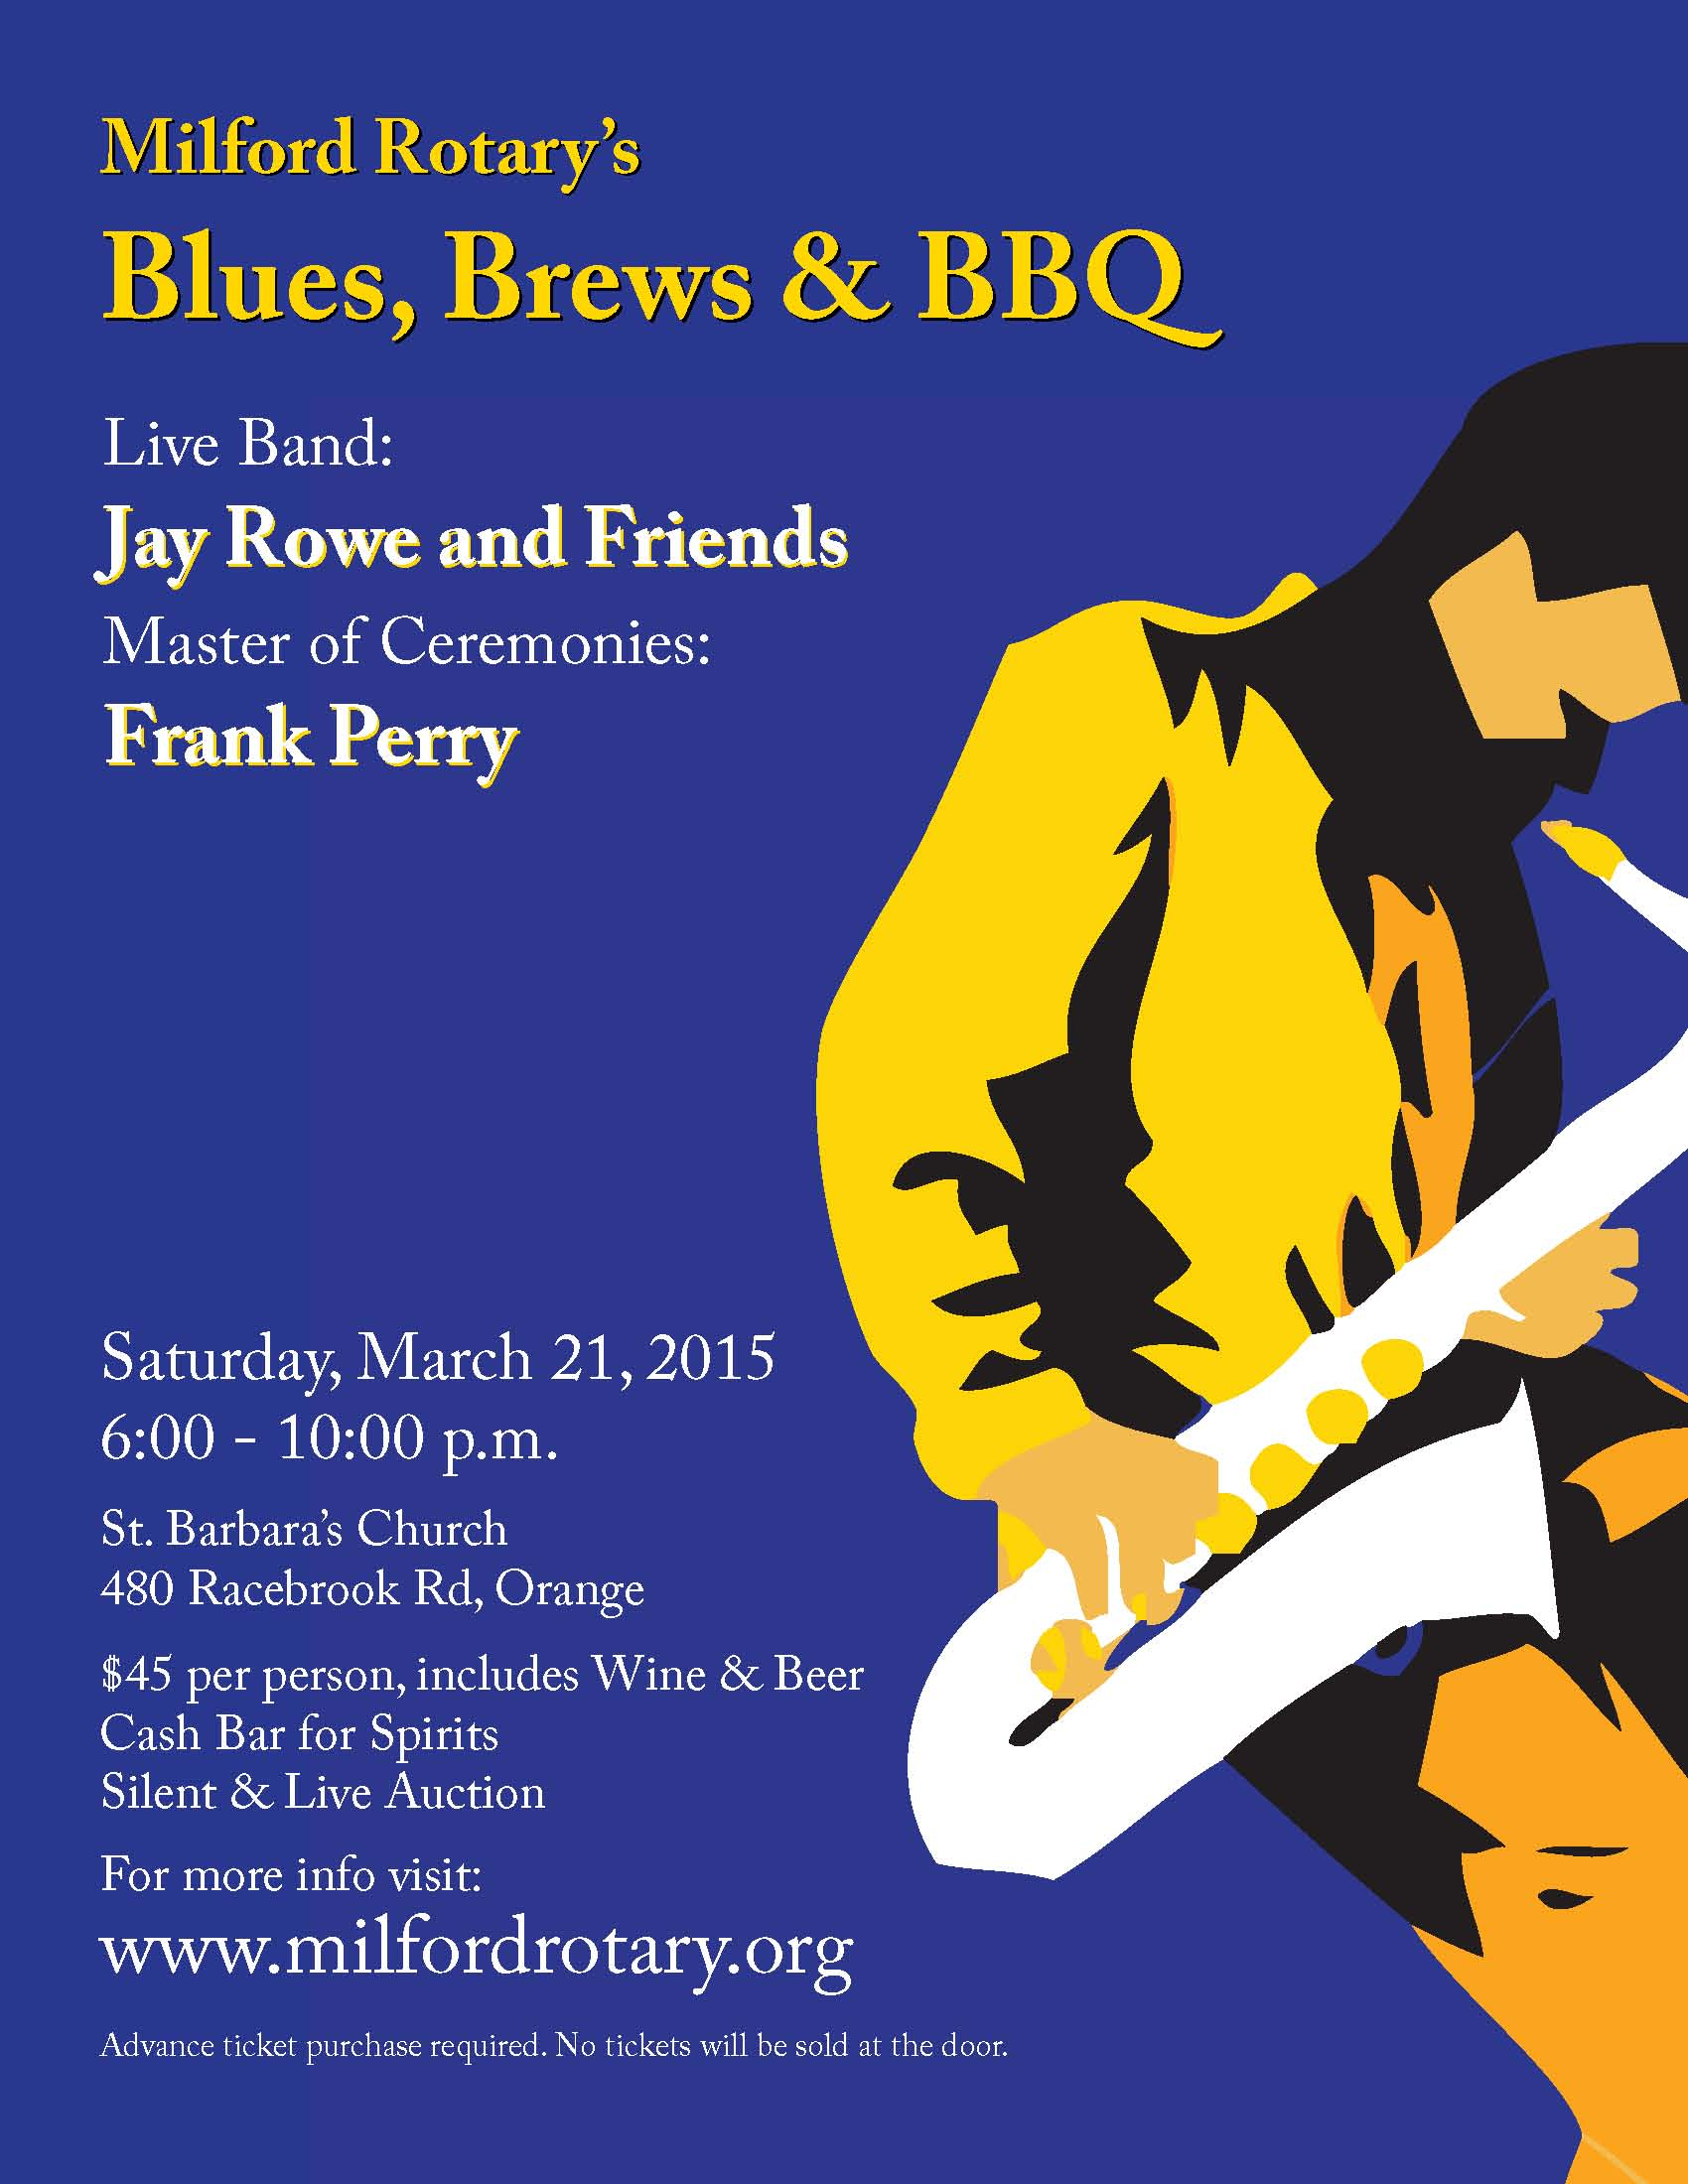 Blues, Brews & BBQ is March 21, 2015!